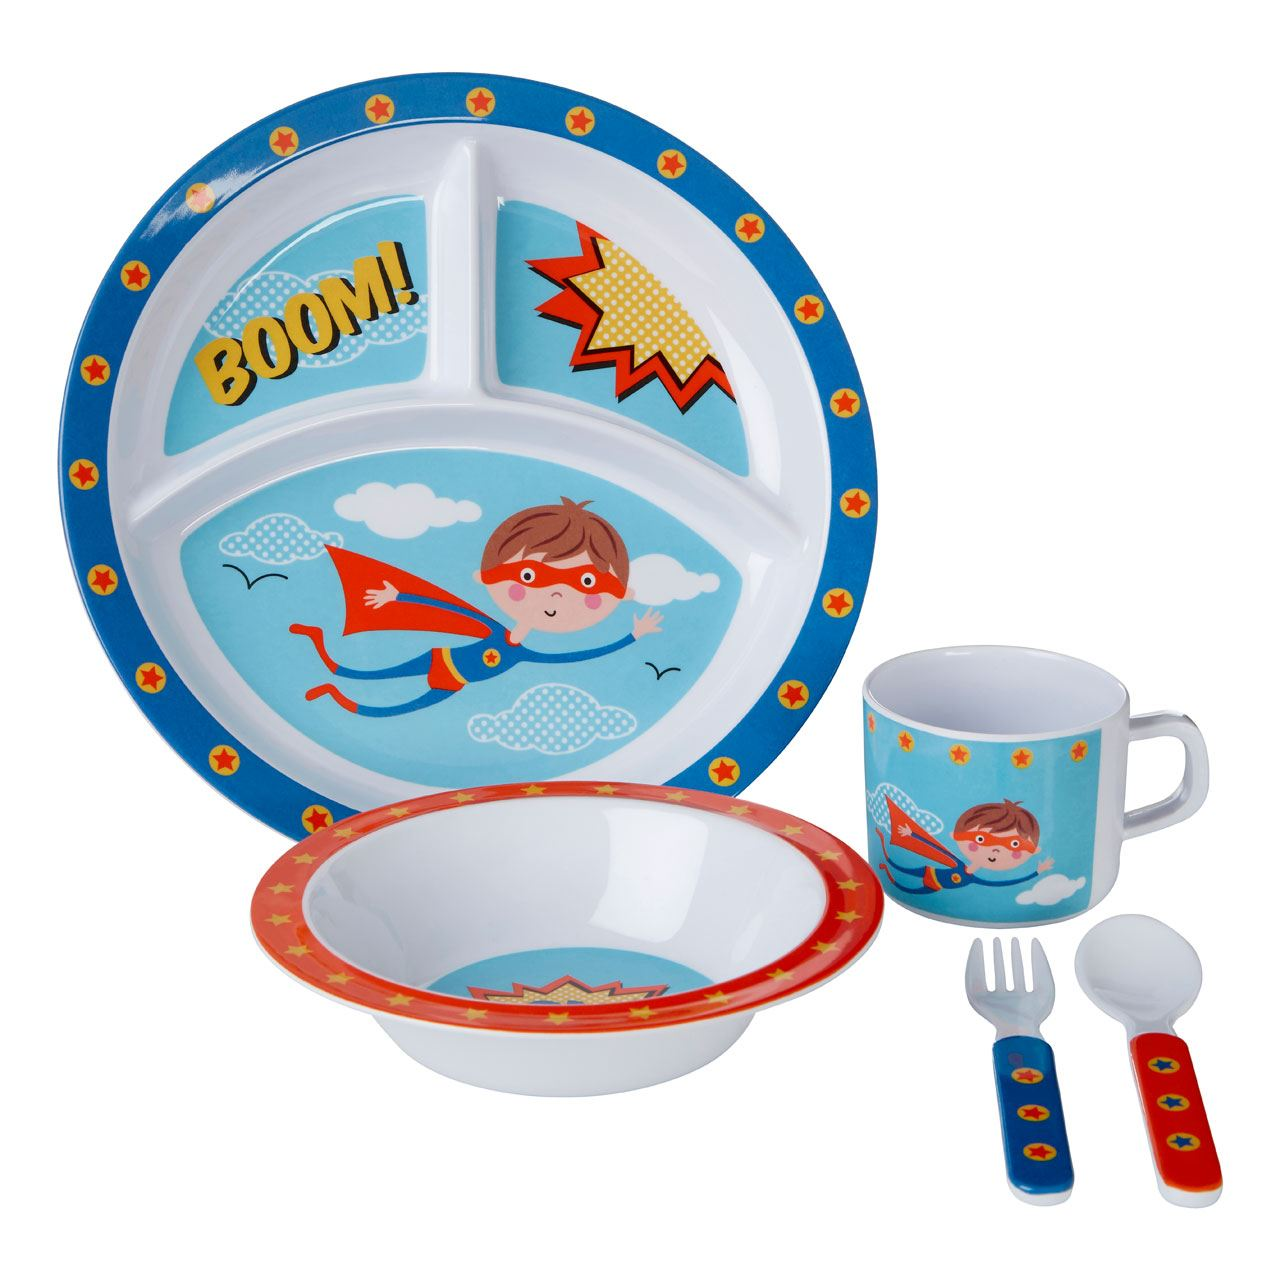 ... Picture 2 of 2  sc 1 st  eBay & 5pc Kids Boys Girls Childrens Plate Bowl Cup Spoon Fork Lunch Dinner ...